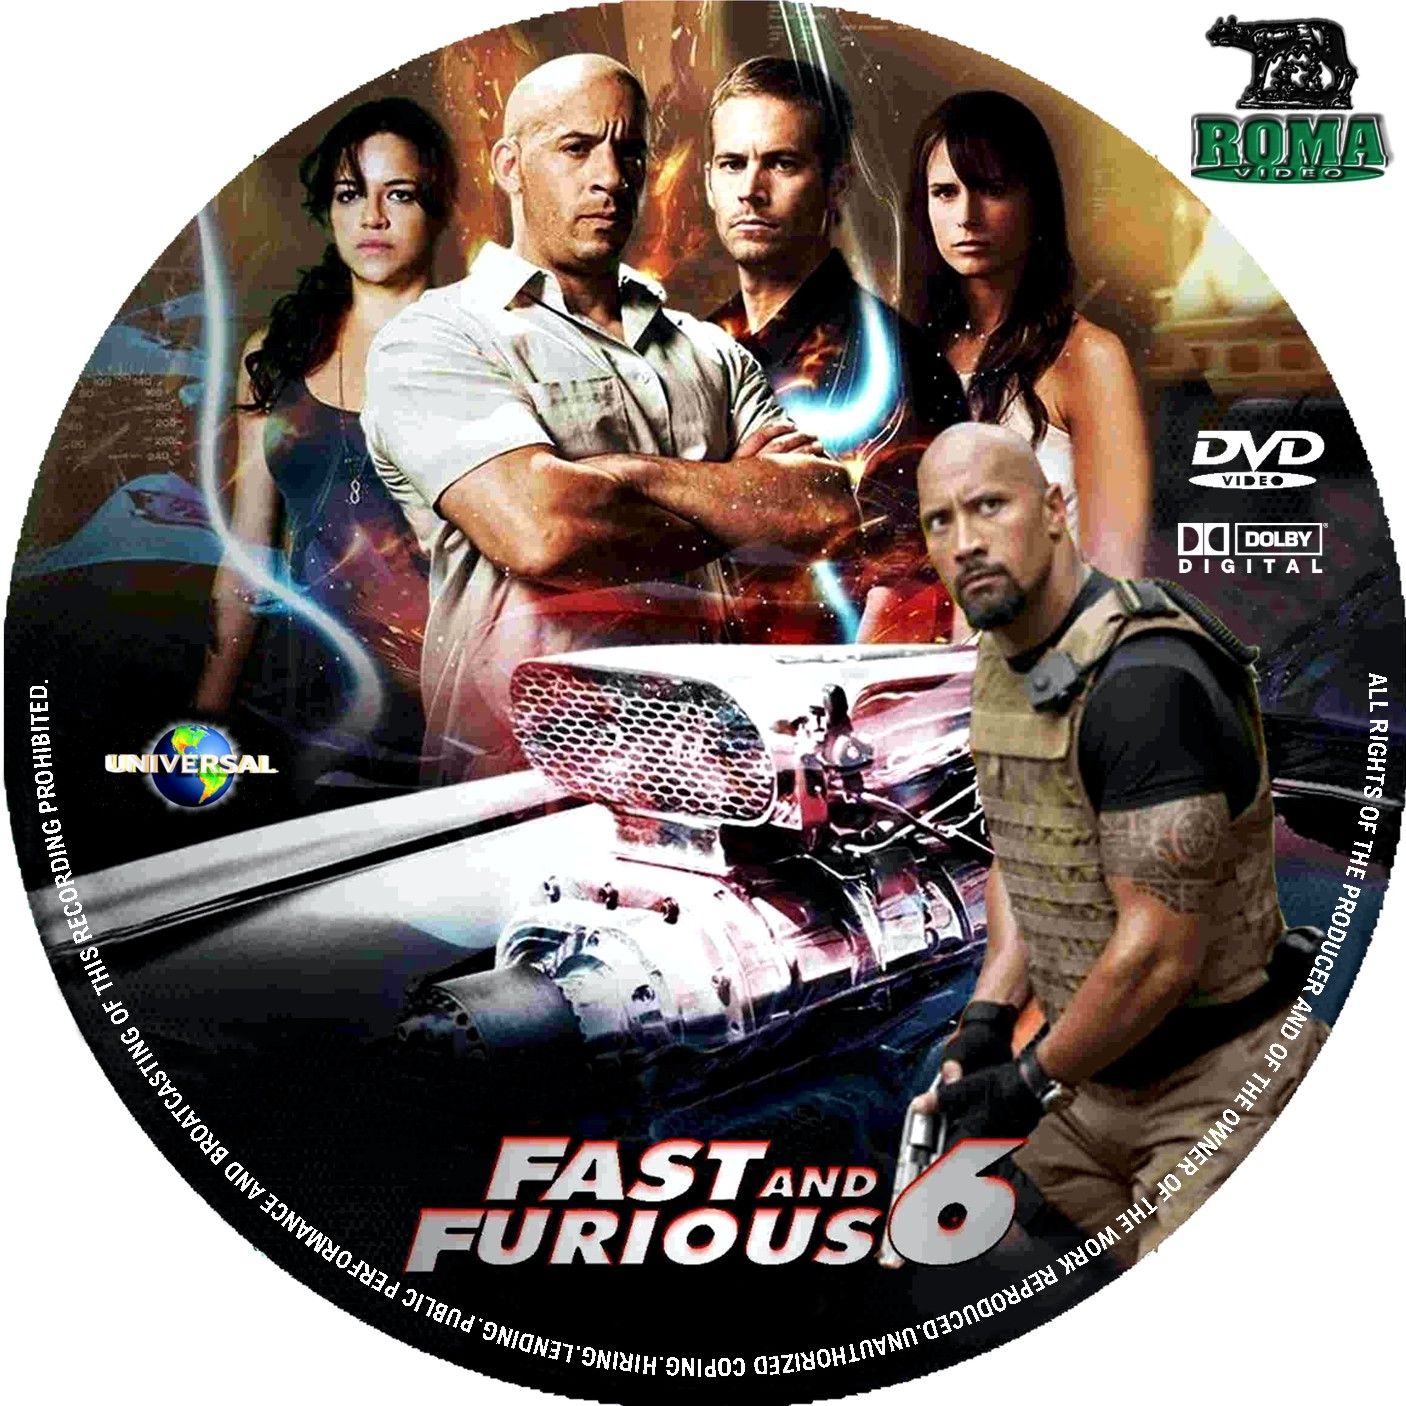 Covers Box Sk Fast And Furious 6 2013 High Quality Dvd Blueray Movie